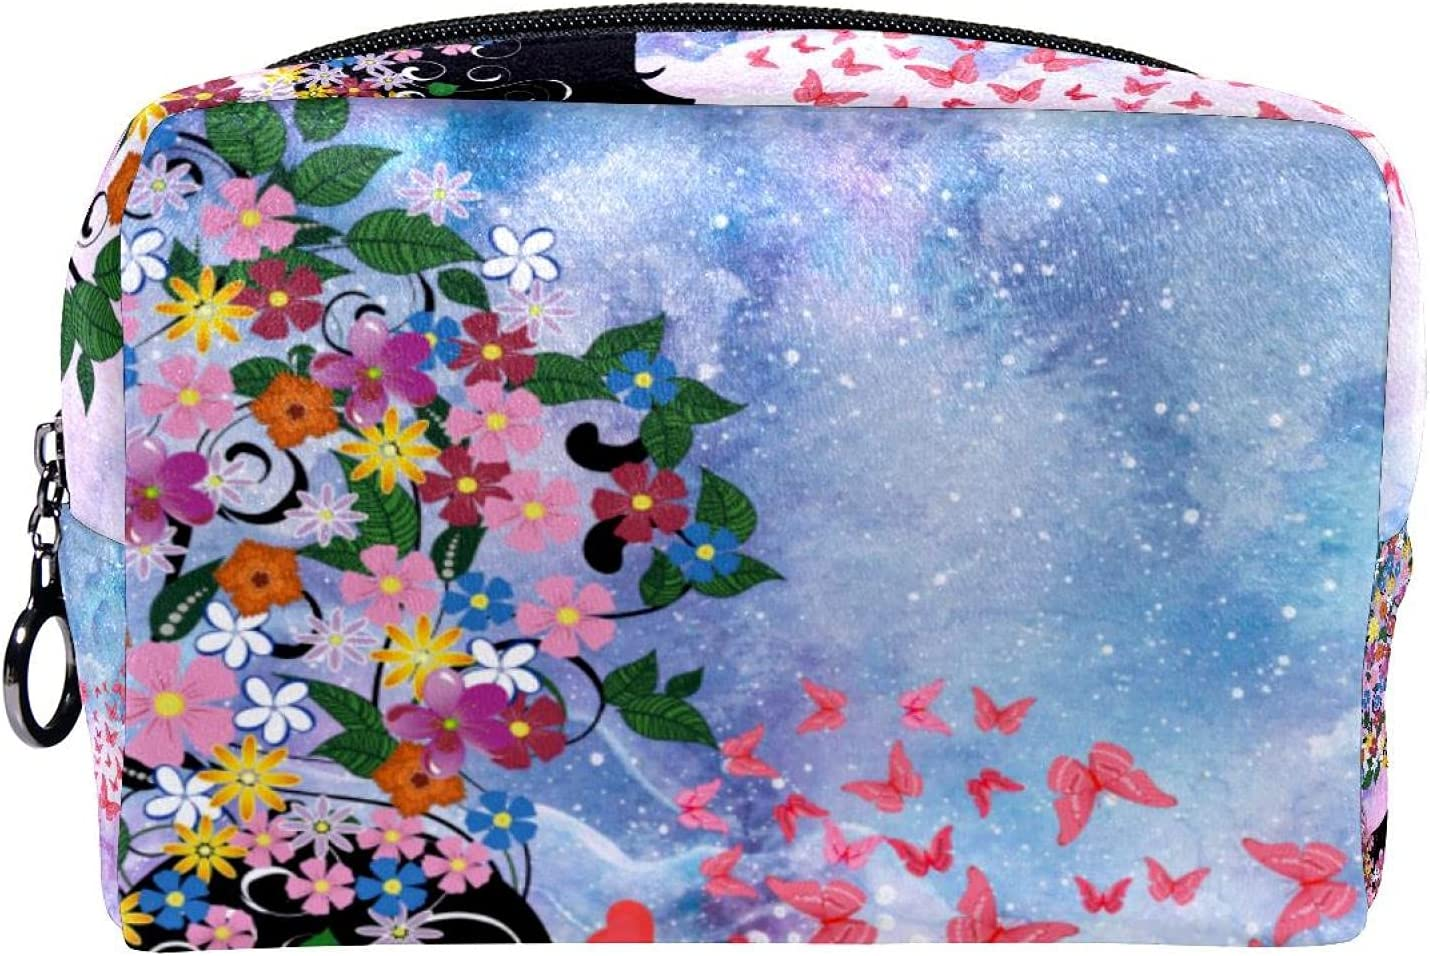 Las Vegas Mall Compact Cosmetic Bag Makeup Phoenix Mall Coin Butterf purse Dream Marble